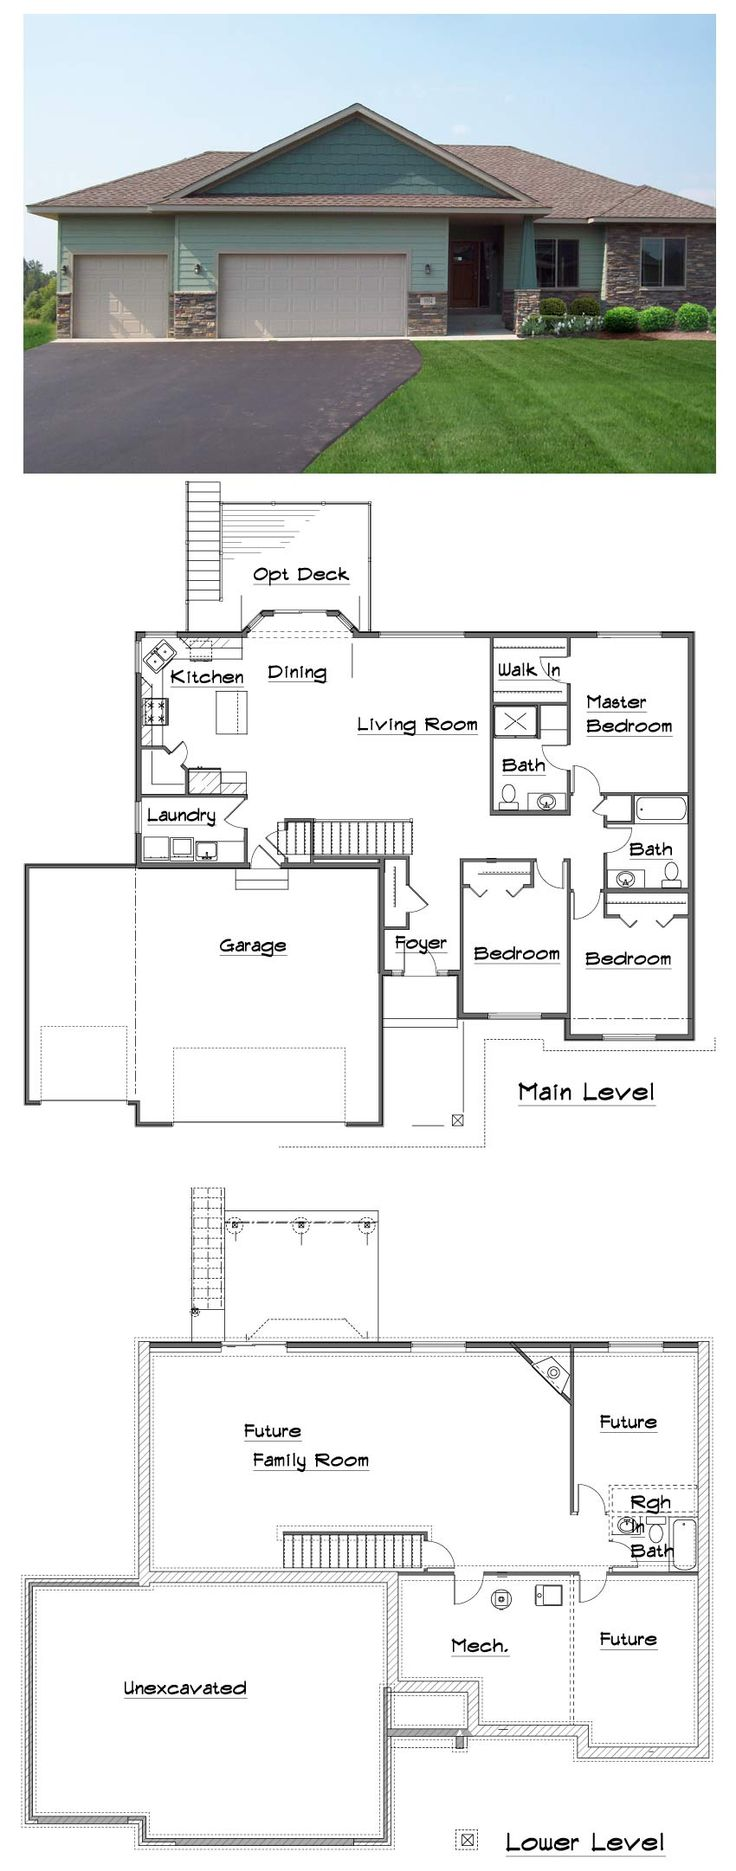 17 best images about sherco home models on pinterest for Home models plans